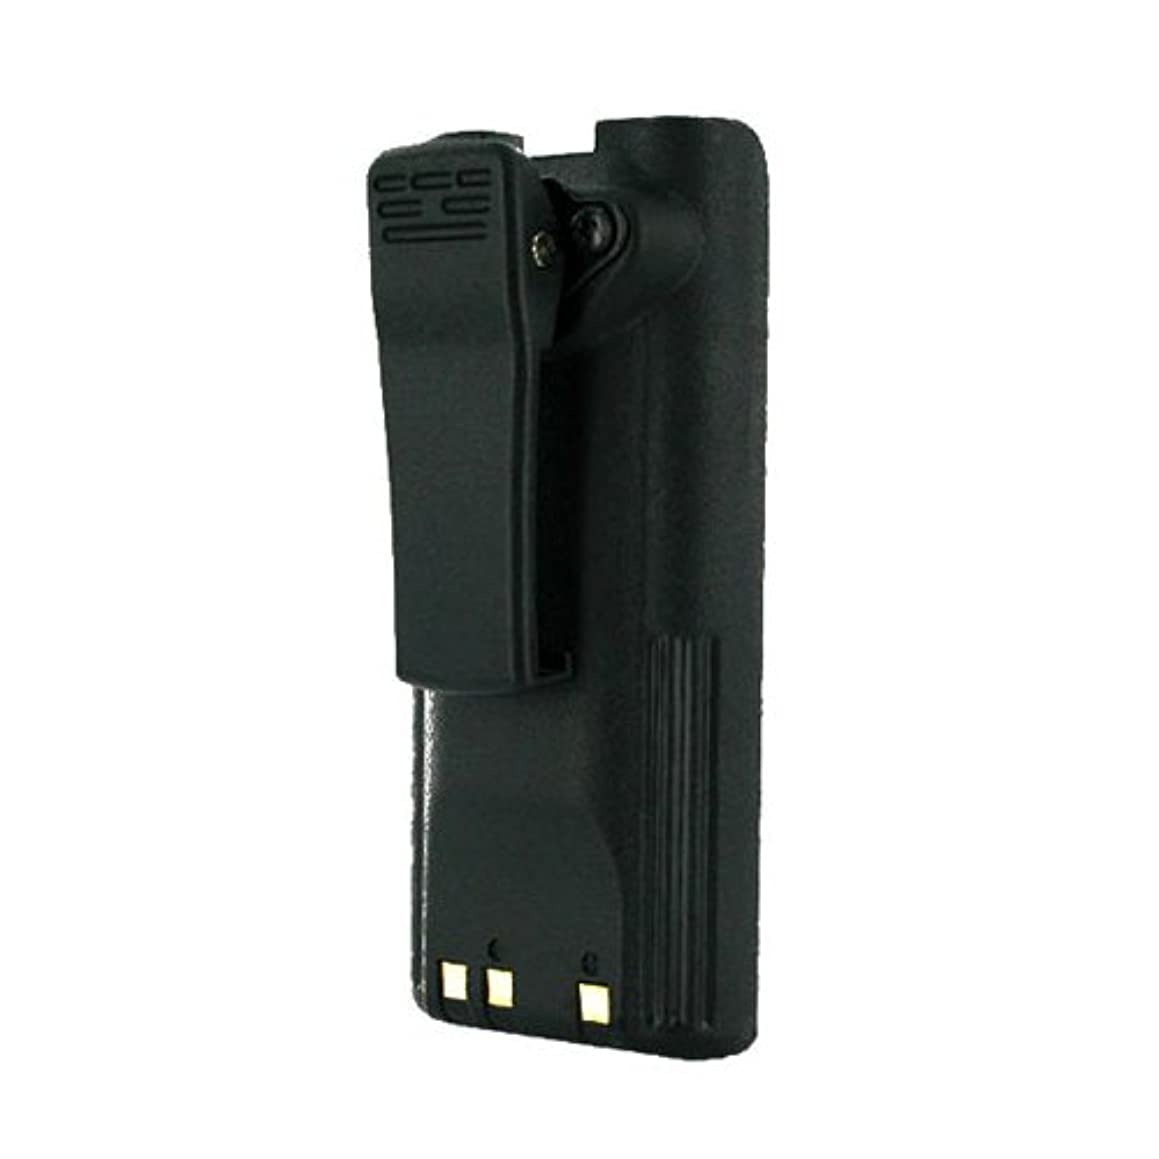 Icom IC-21 2-Way Radio Battery (Li-Ion 7.4V 2000mAh) Rechargeable Battery - Replacement for Icom BP211 Battery